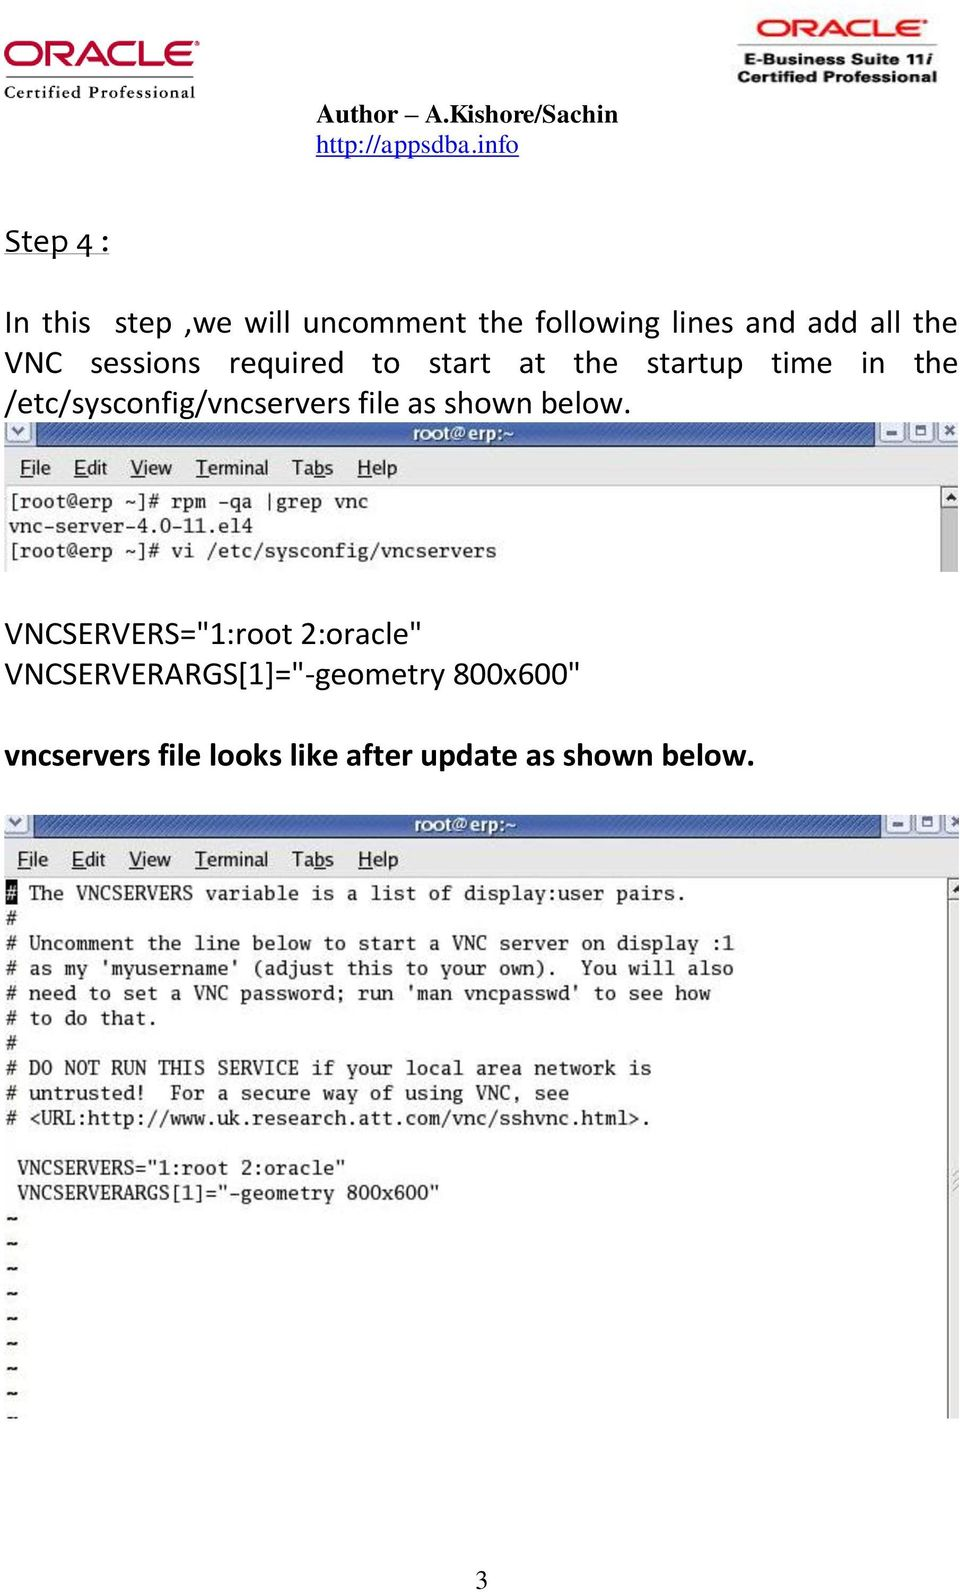 /etc/sysconfig/vncservers file as shown below.